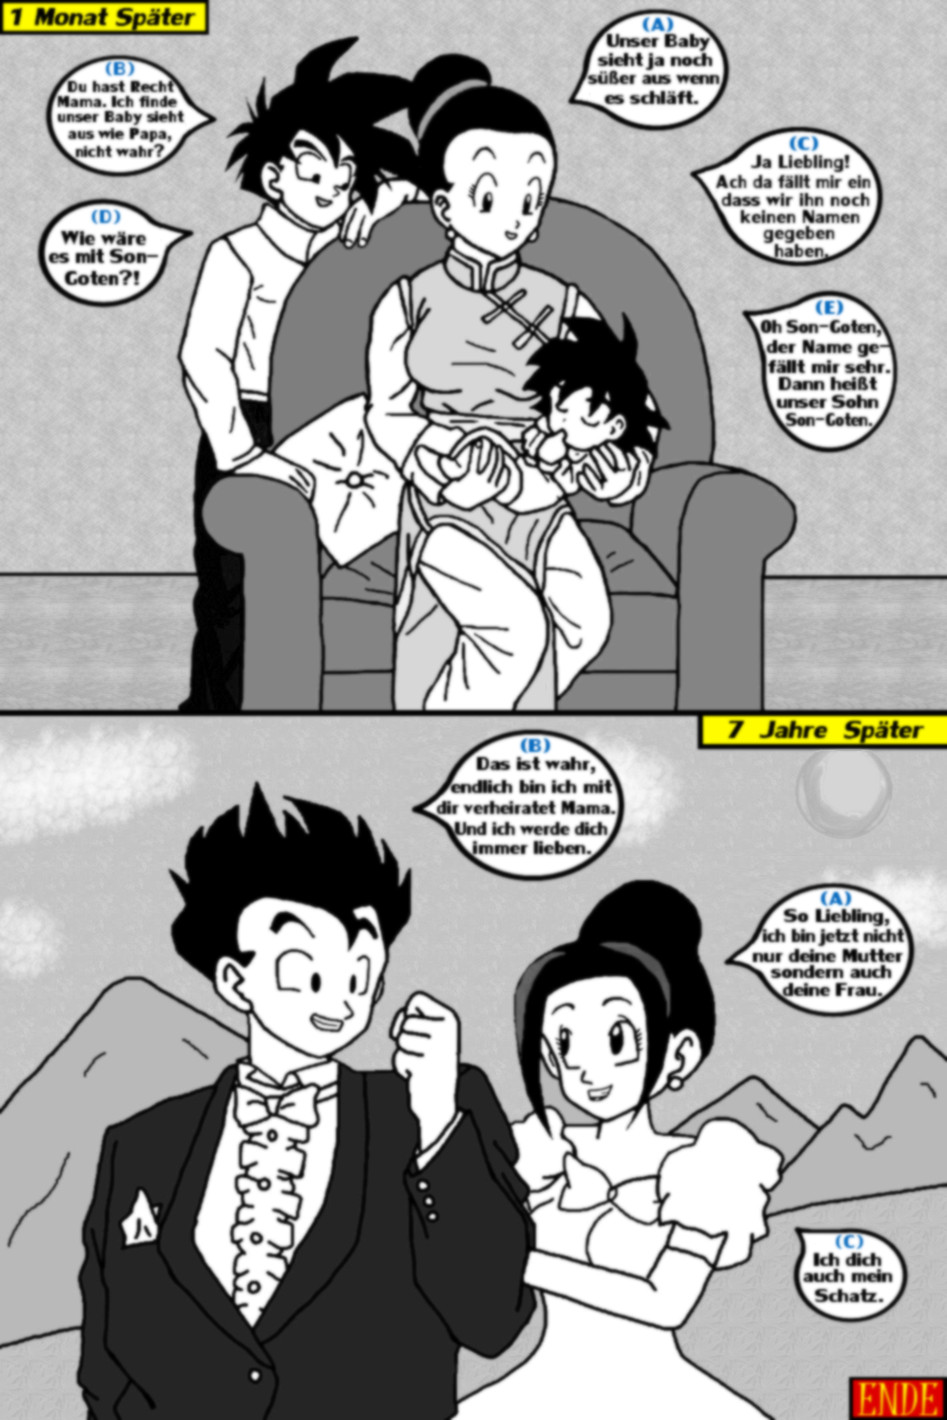 goten and gohan age difference in dating